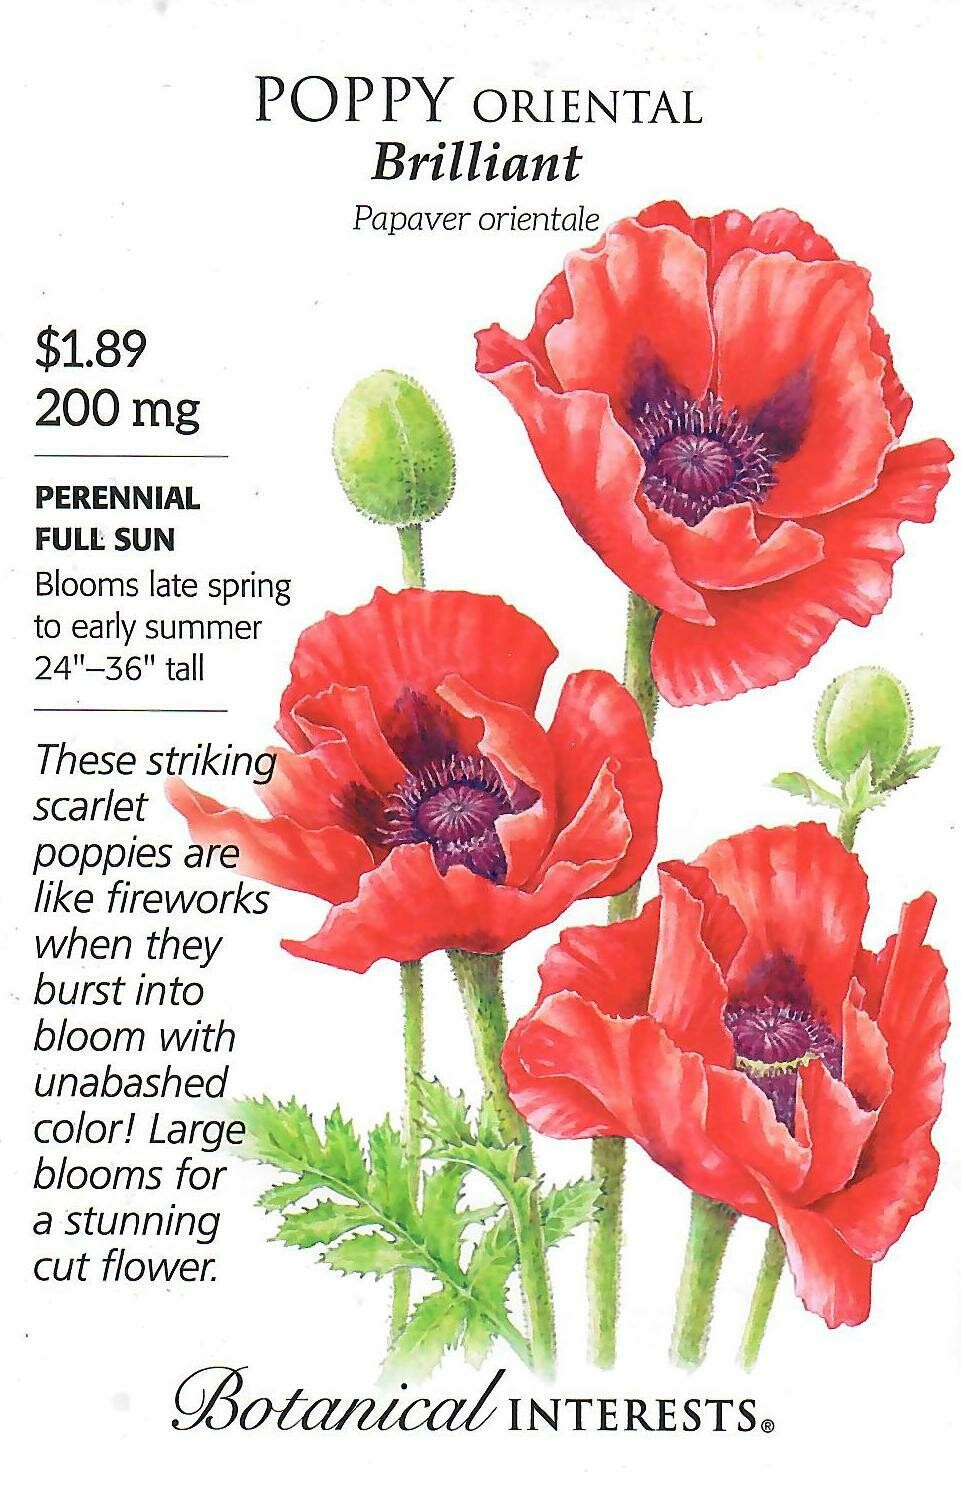 Poppy Oriental Brilliant Botanical Interests